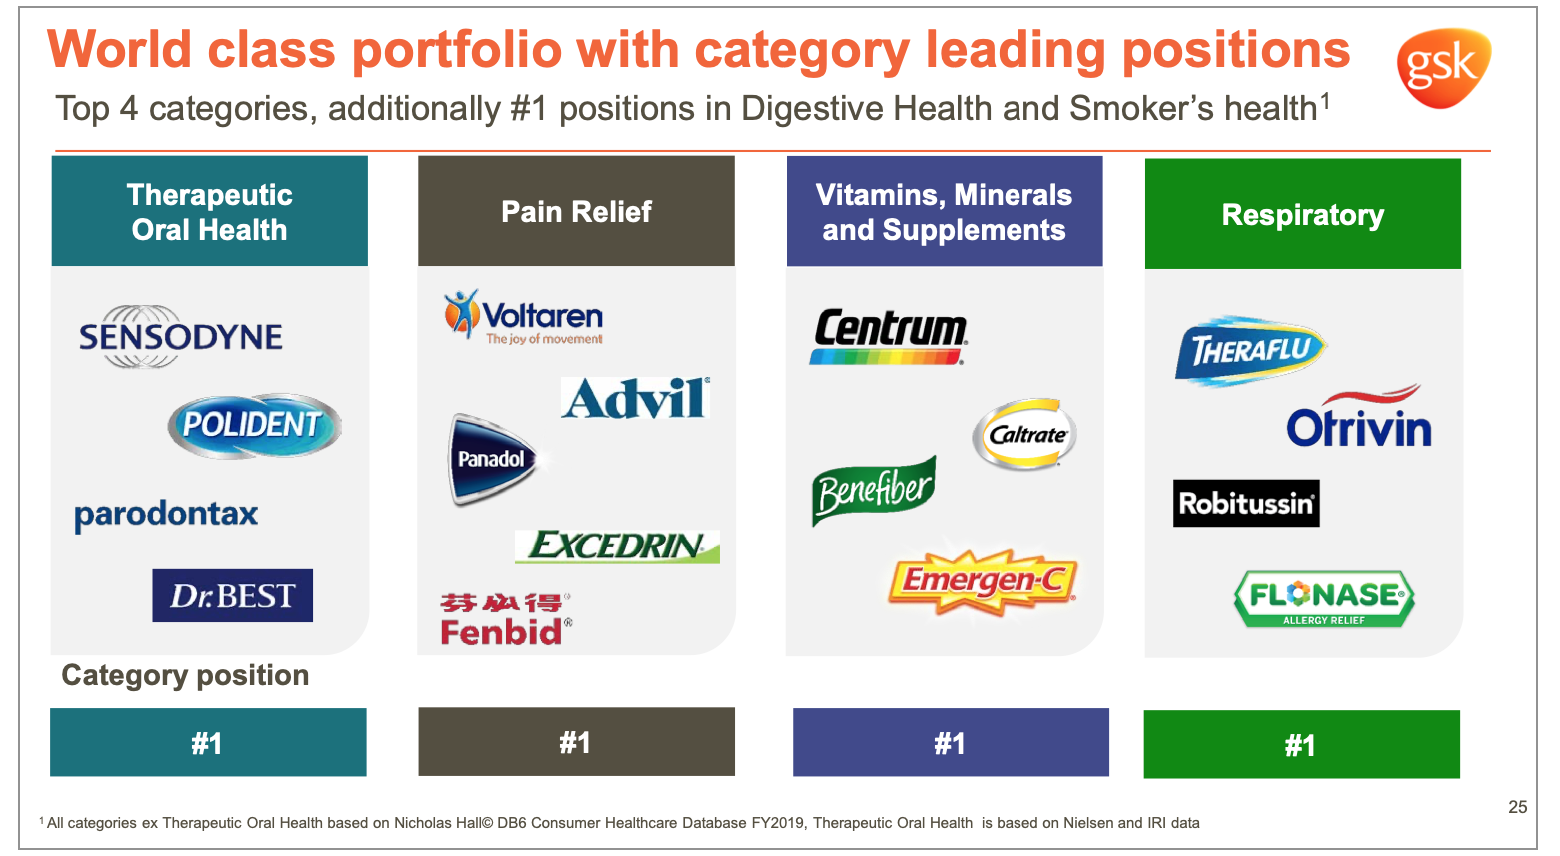 GlaxoSmithKline (GSK) Consumer Health product categories and brands